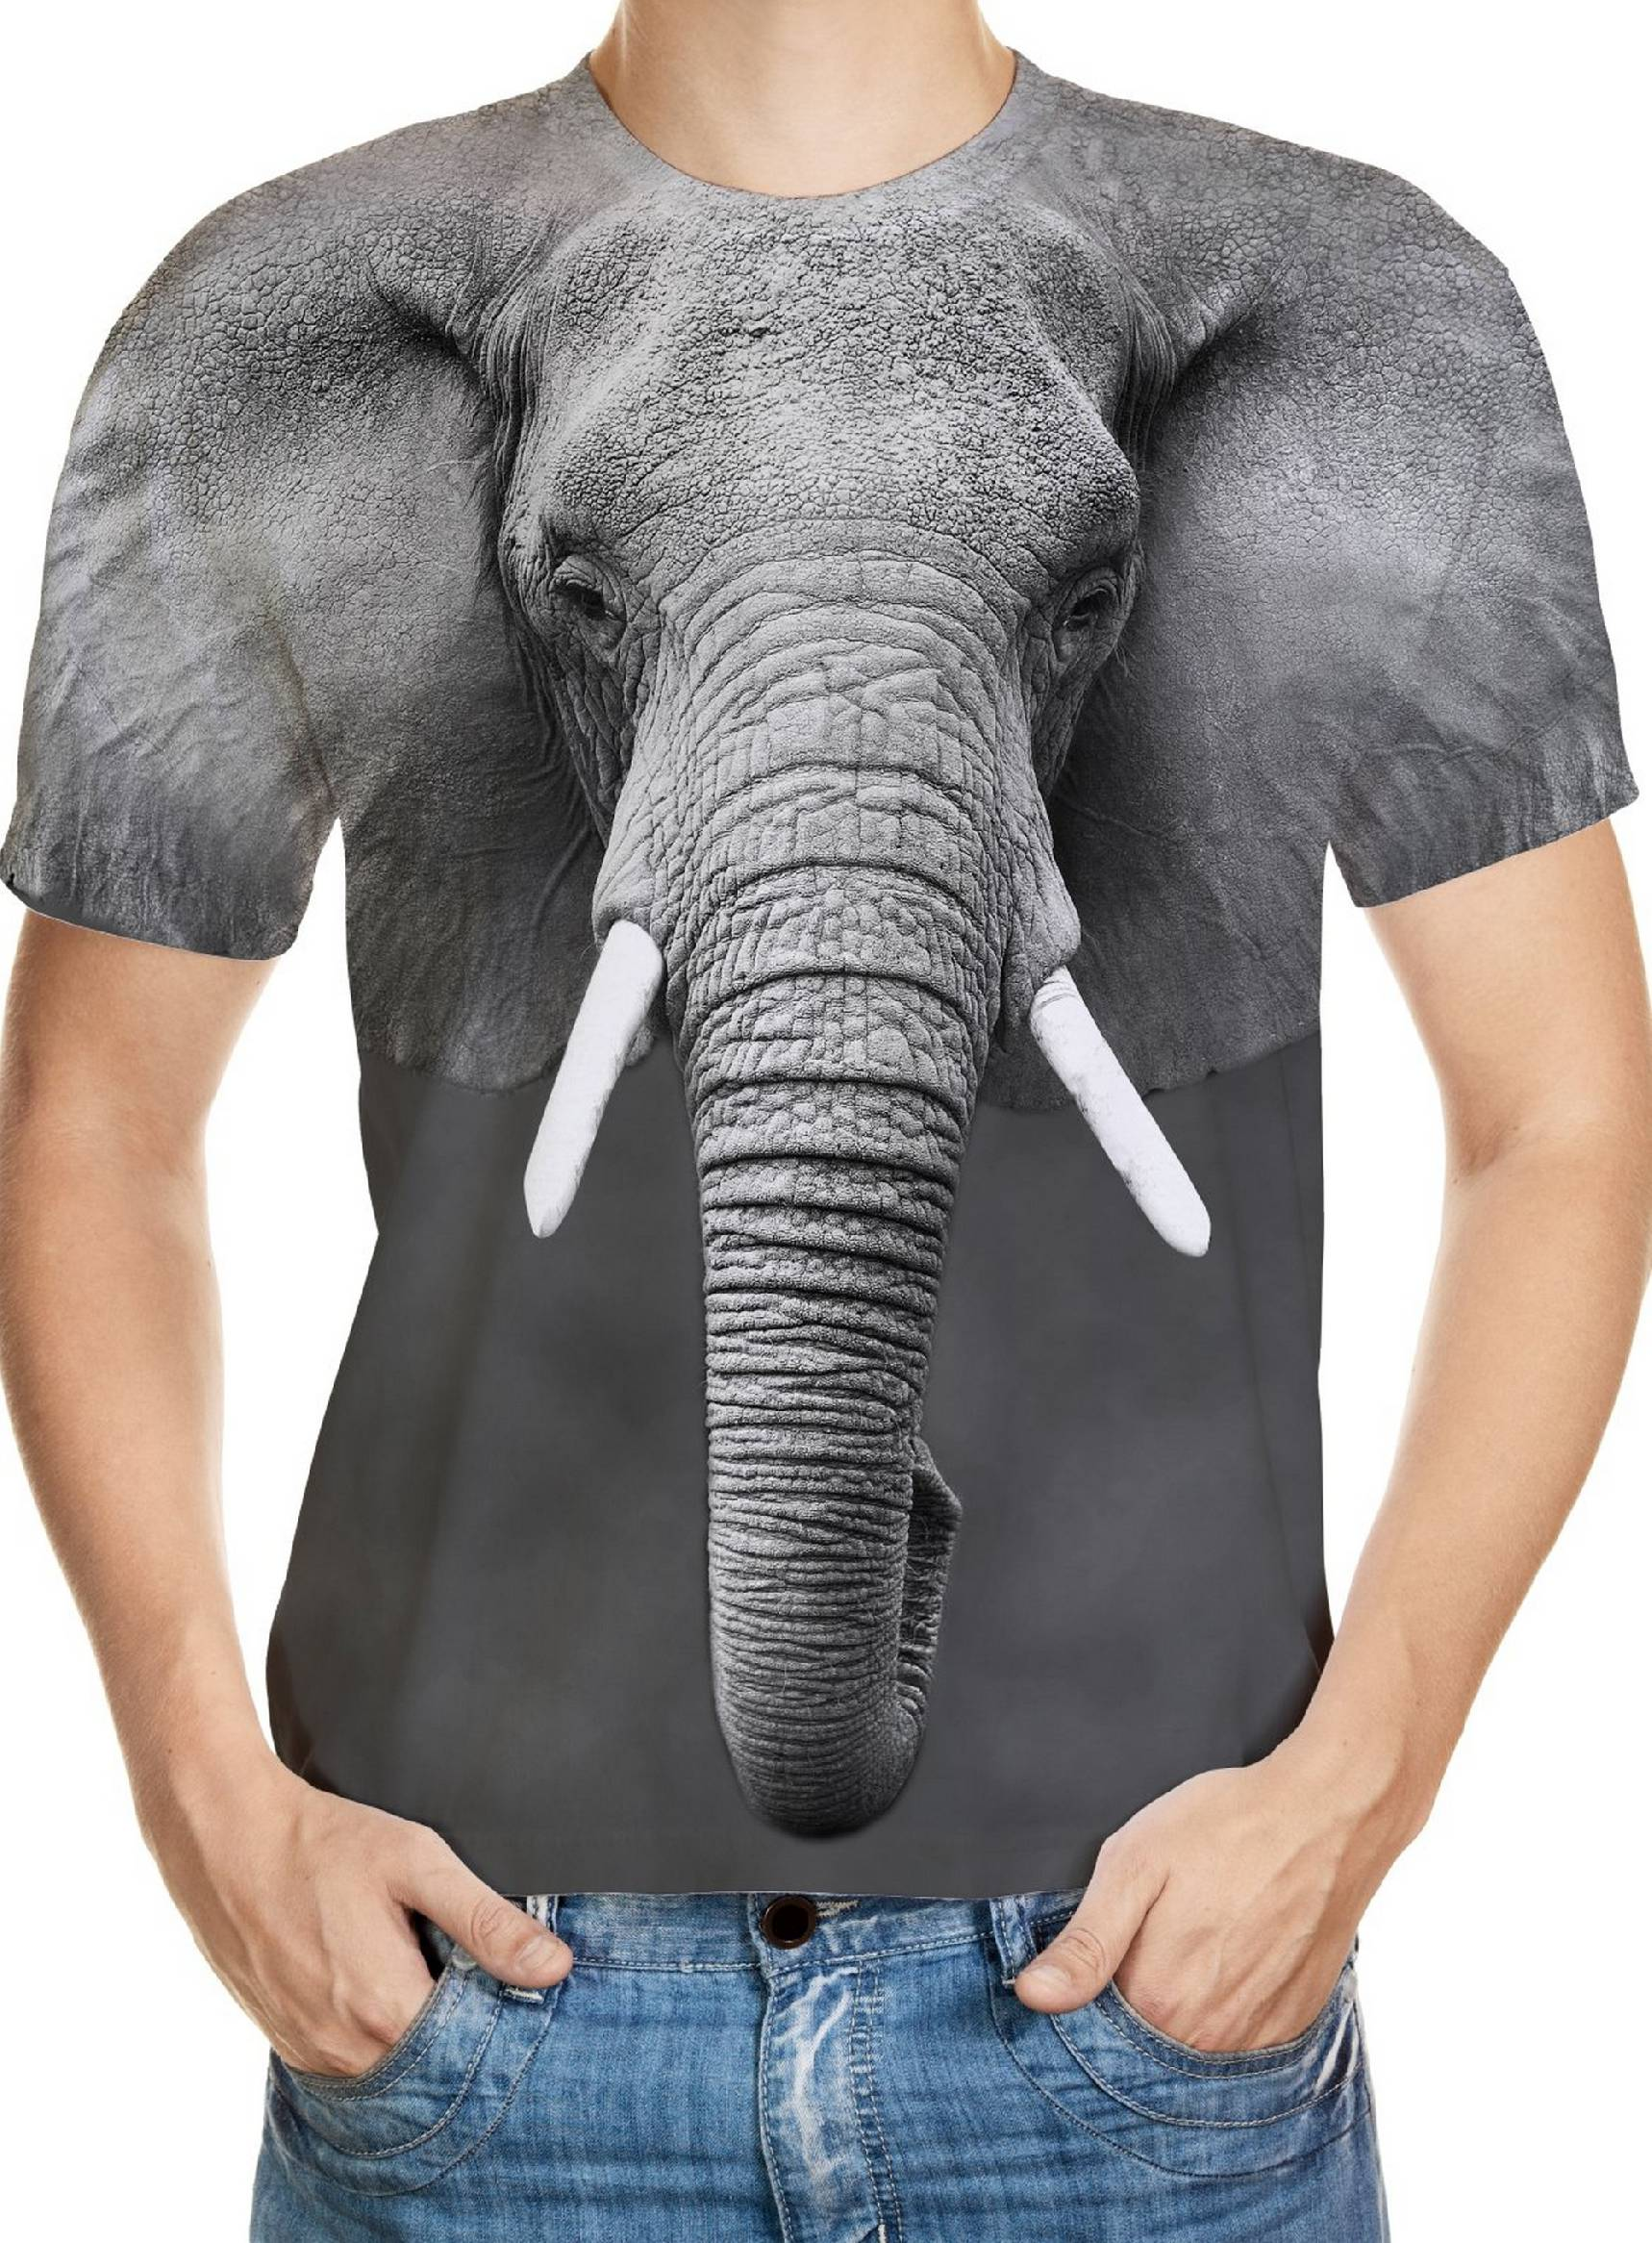 c06c8b17 Elephant Designed 3D T-Shirt